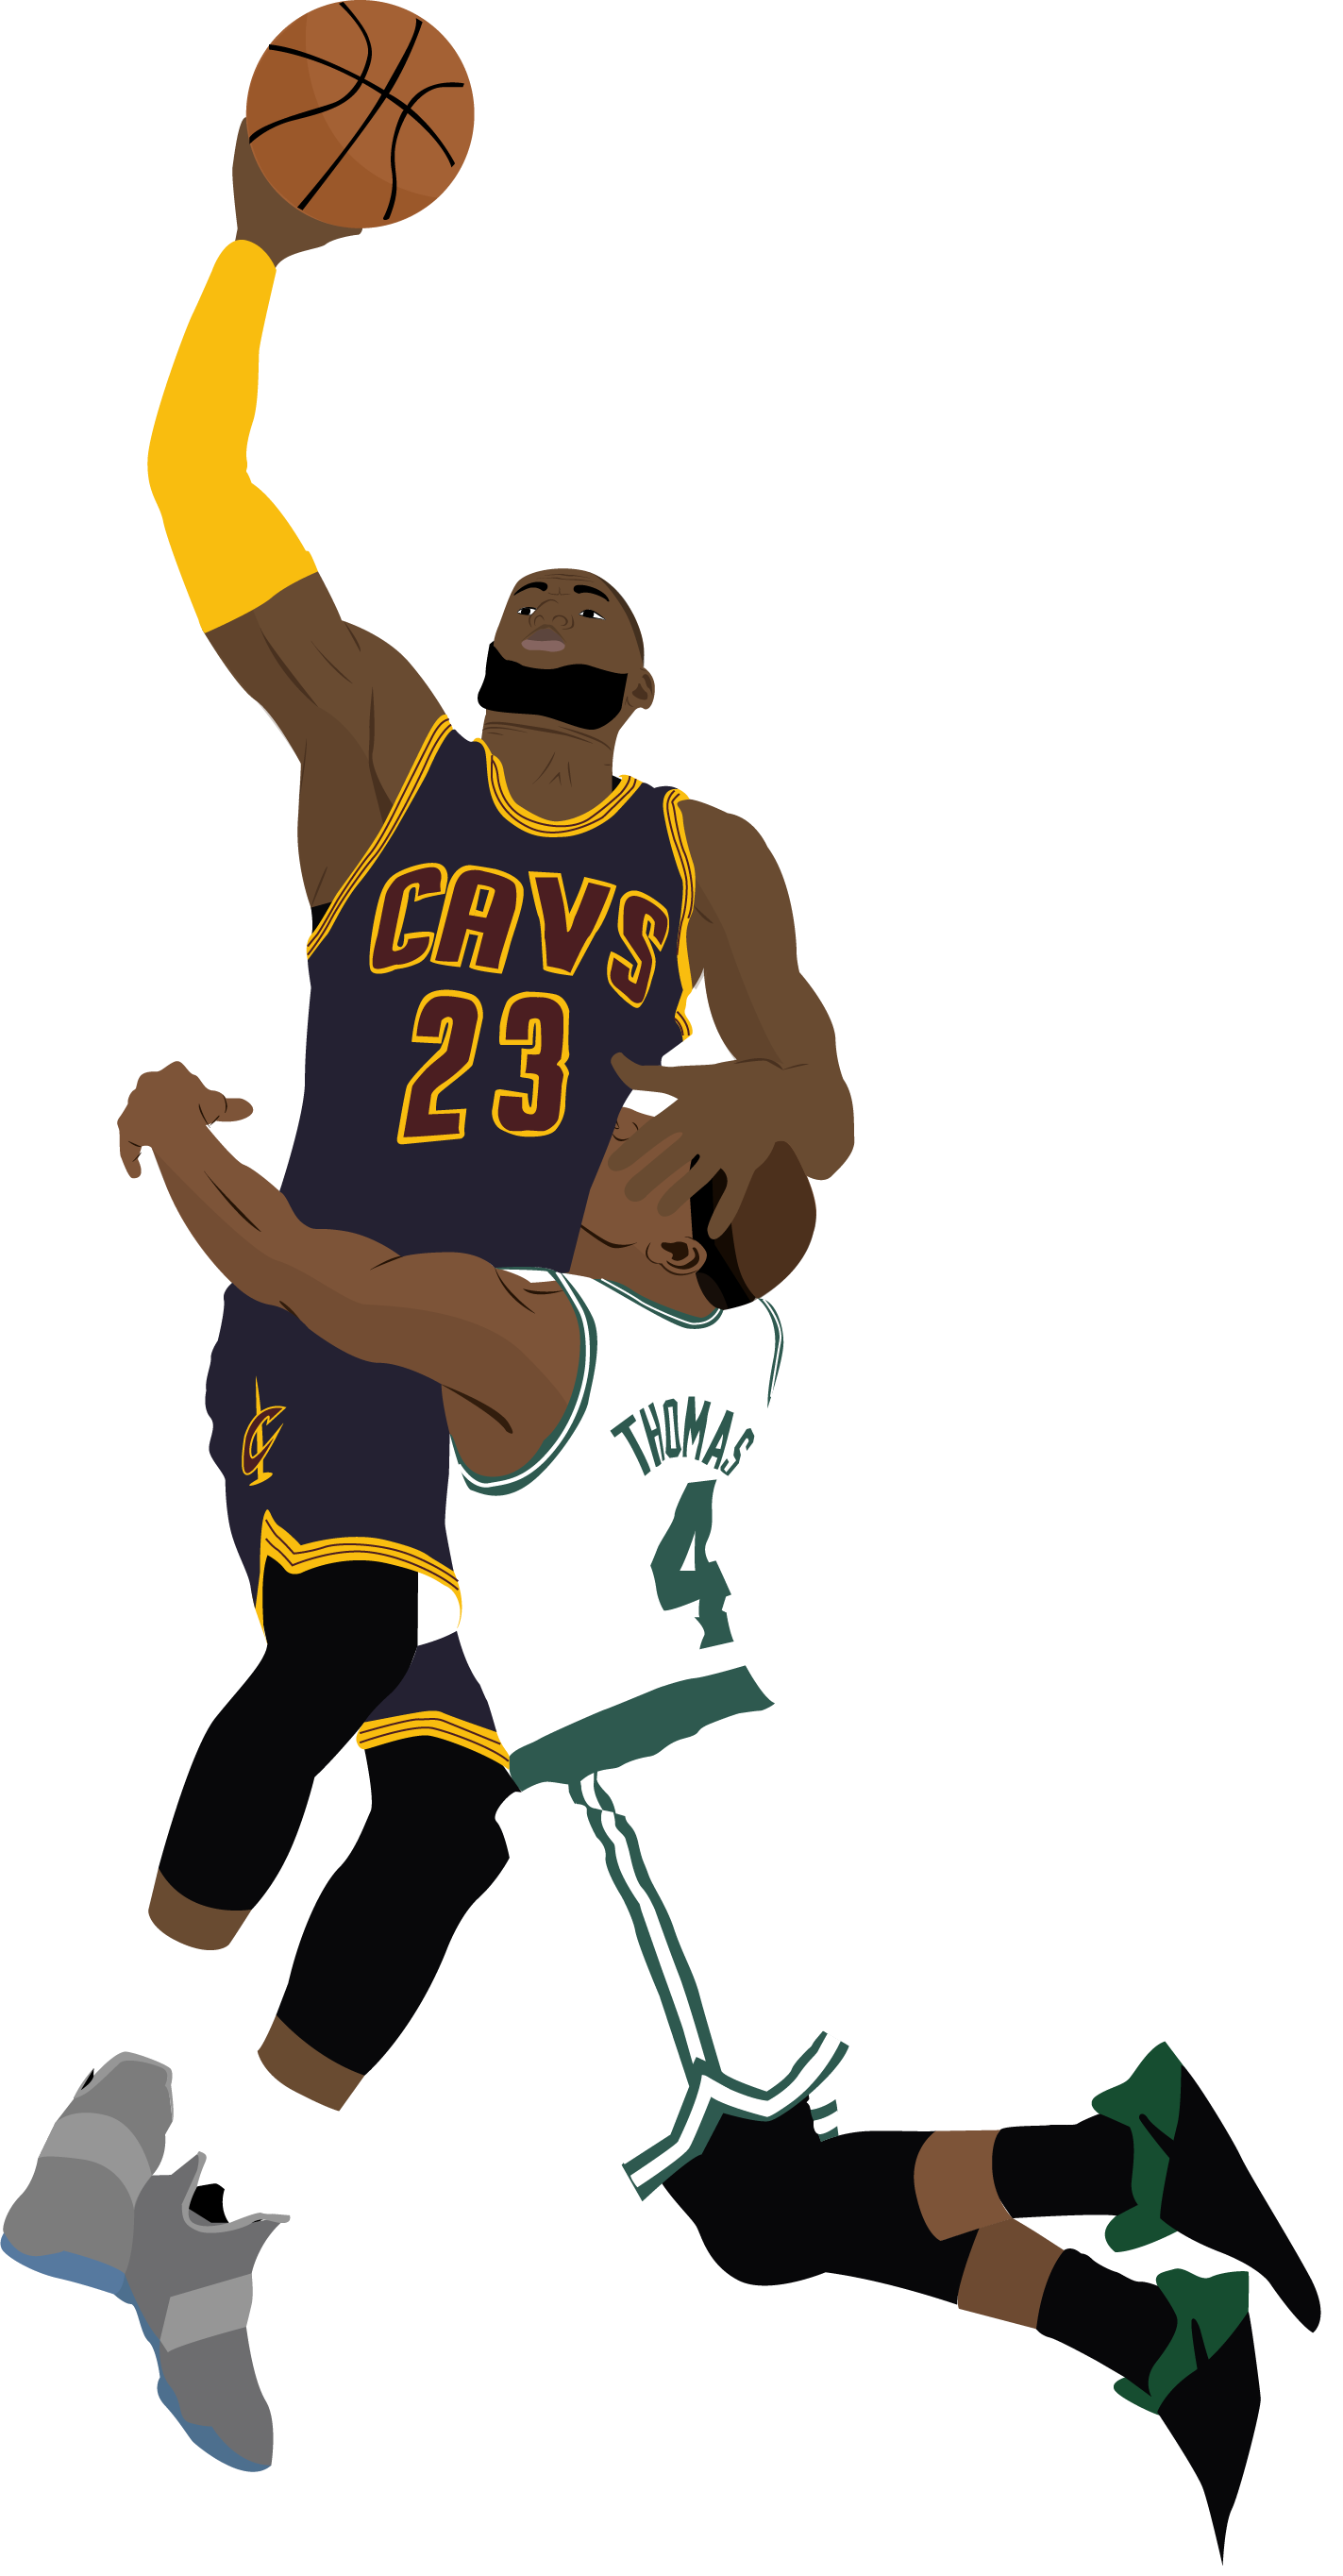 Basketball player dunking clipart svg transparent Murphy Miranda - LeBron James Dunk On Isaiah Thomas Illustration svg transparent